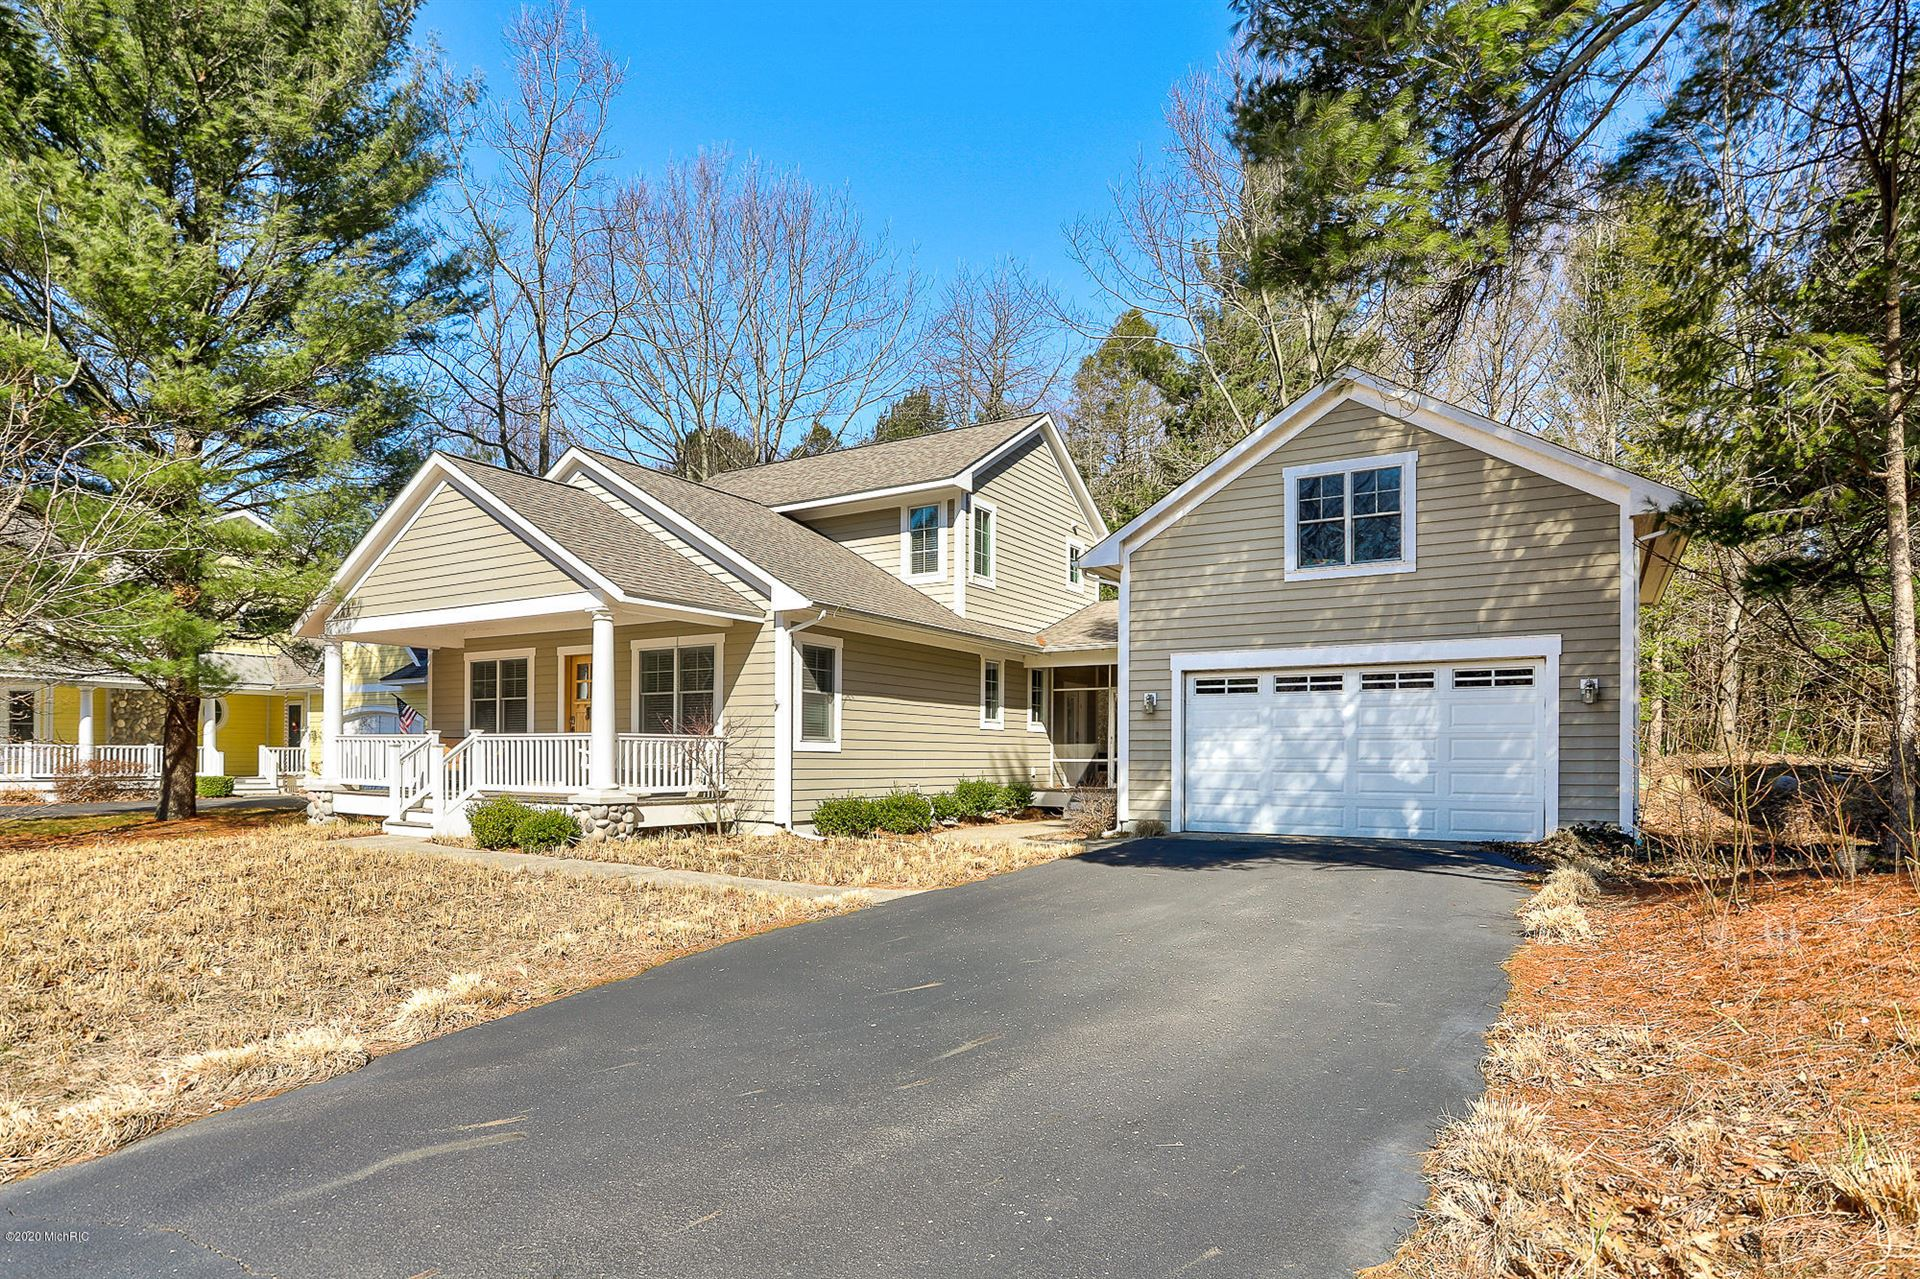 77274 Summers Gate Circle, South Haven, MI 49090 - MLS#: 20010389